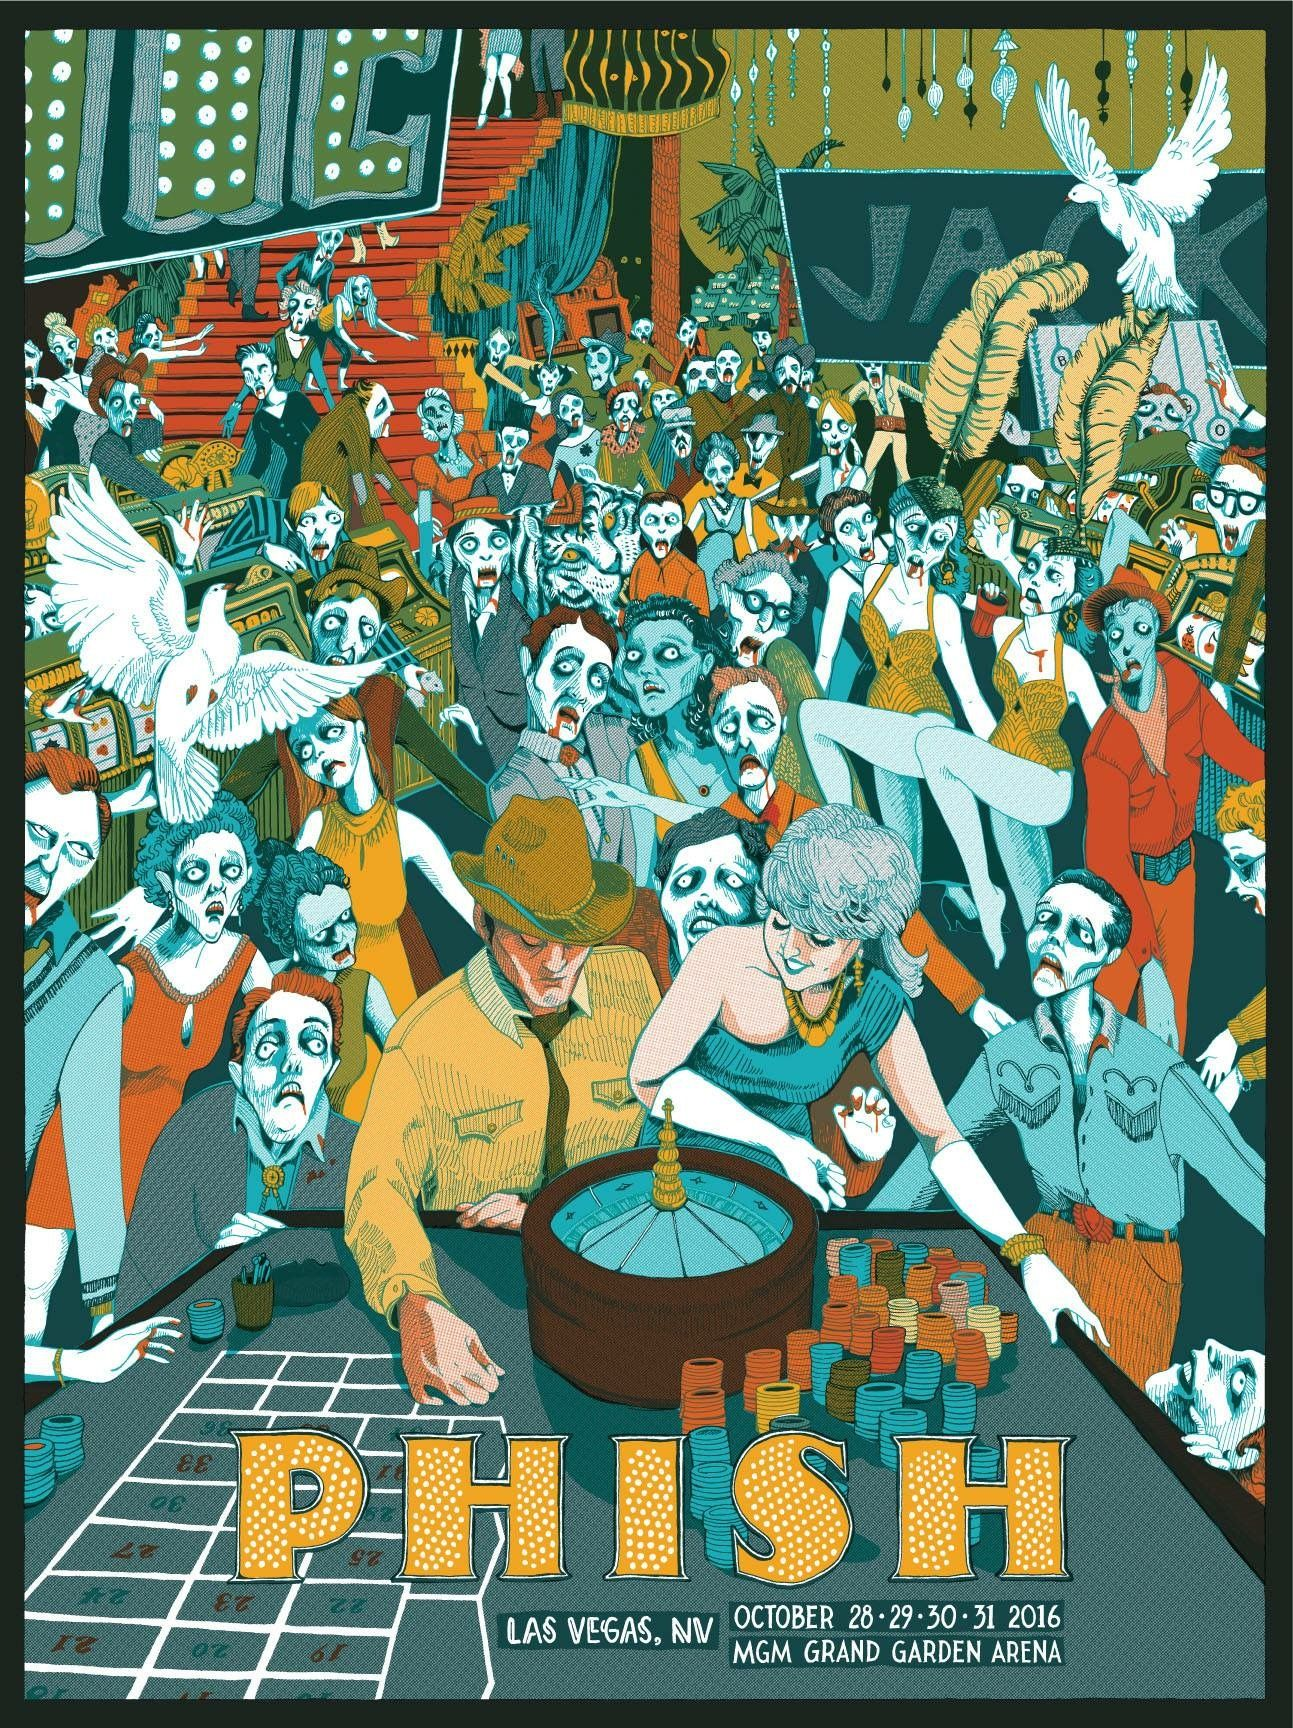 Official Phish Halloween Poster 2020 28 31 October 2016 The second of three LE posters for Phish's Las